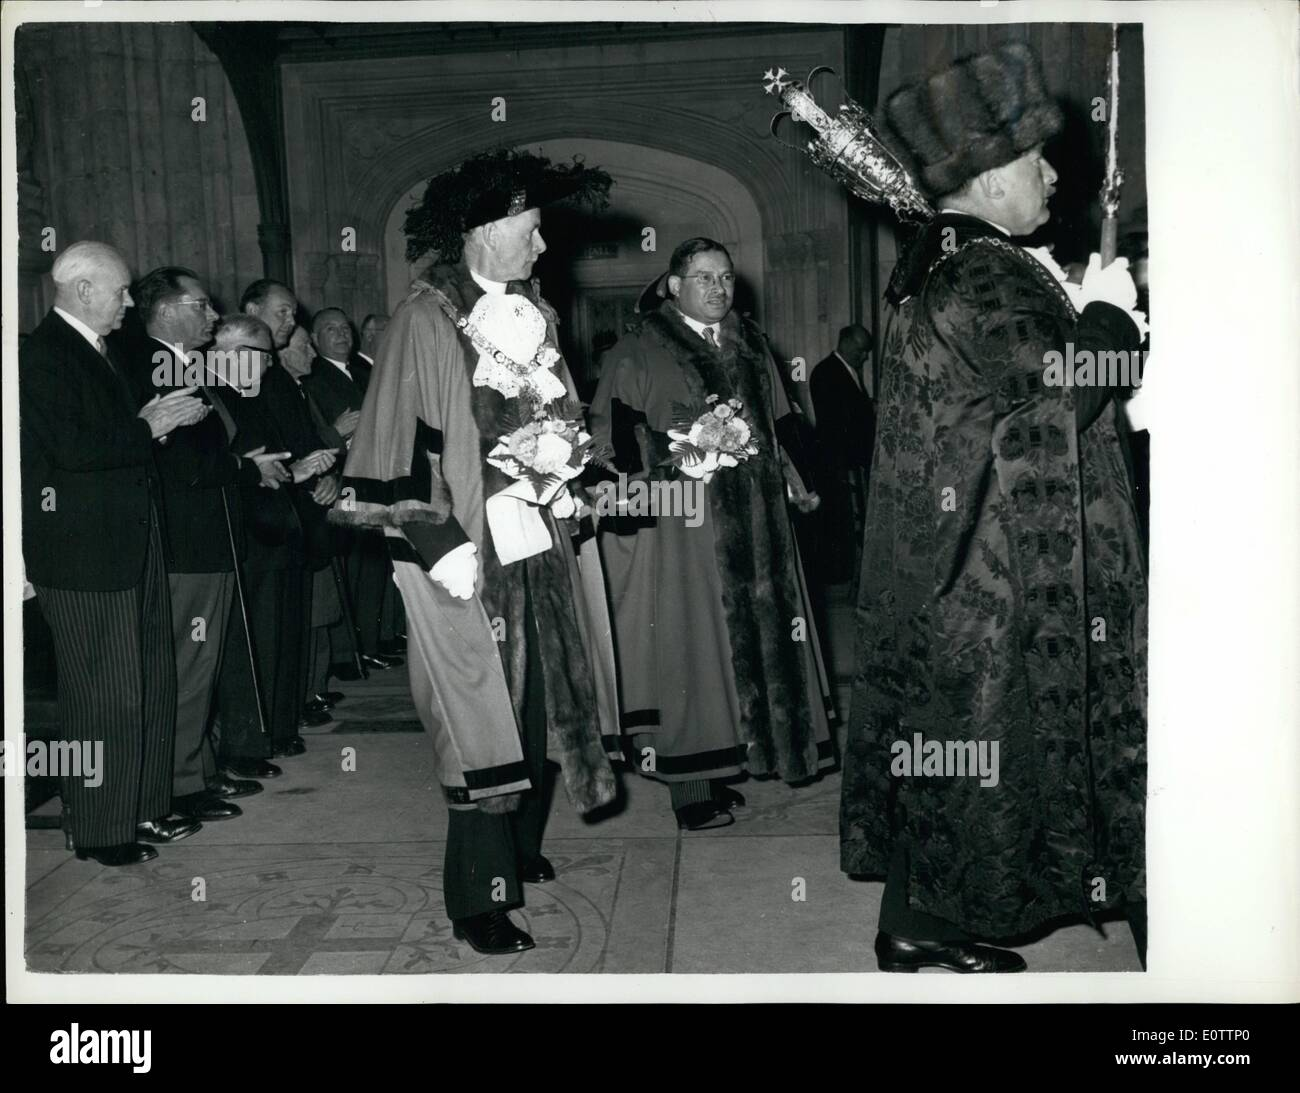 Sep. 09, 1960 - Election of the new Lord Mayor: The New Lord Mayor of London Sir Bernard Walley Cohen (holding nosegay, on right) 46 year old farmer and company director walks in procession with the retiring Lord Mayor (Sir Edmund Stockdale) (holding nosegay, left) during the election ceremony in the London Guildhall, Carrying the traditional nosegay is a custom dating back to the 17th. century since when after the plague of London ins 1665, they have been carried on this and similar occasions. - Stock Image